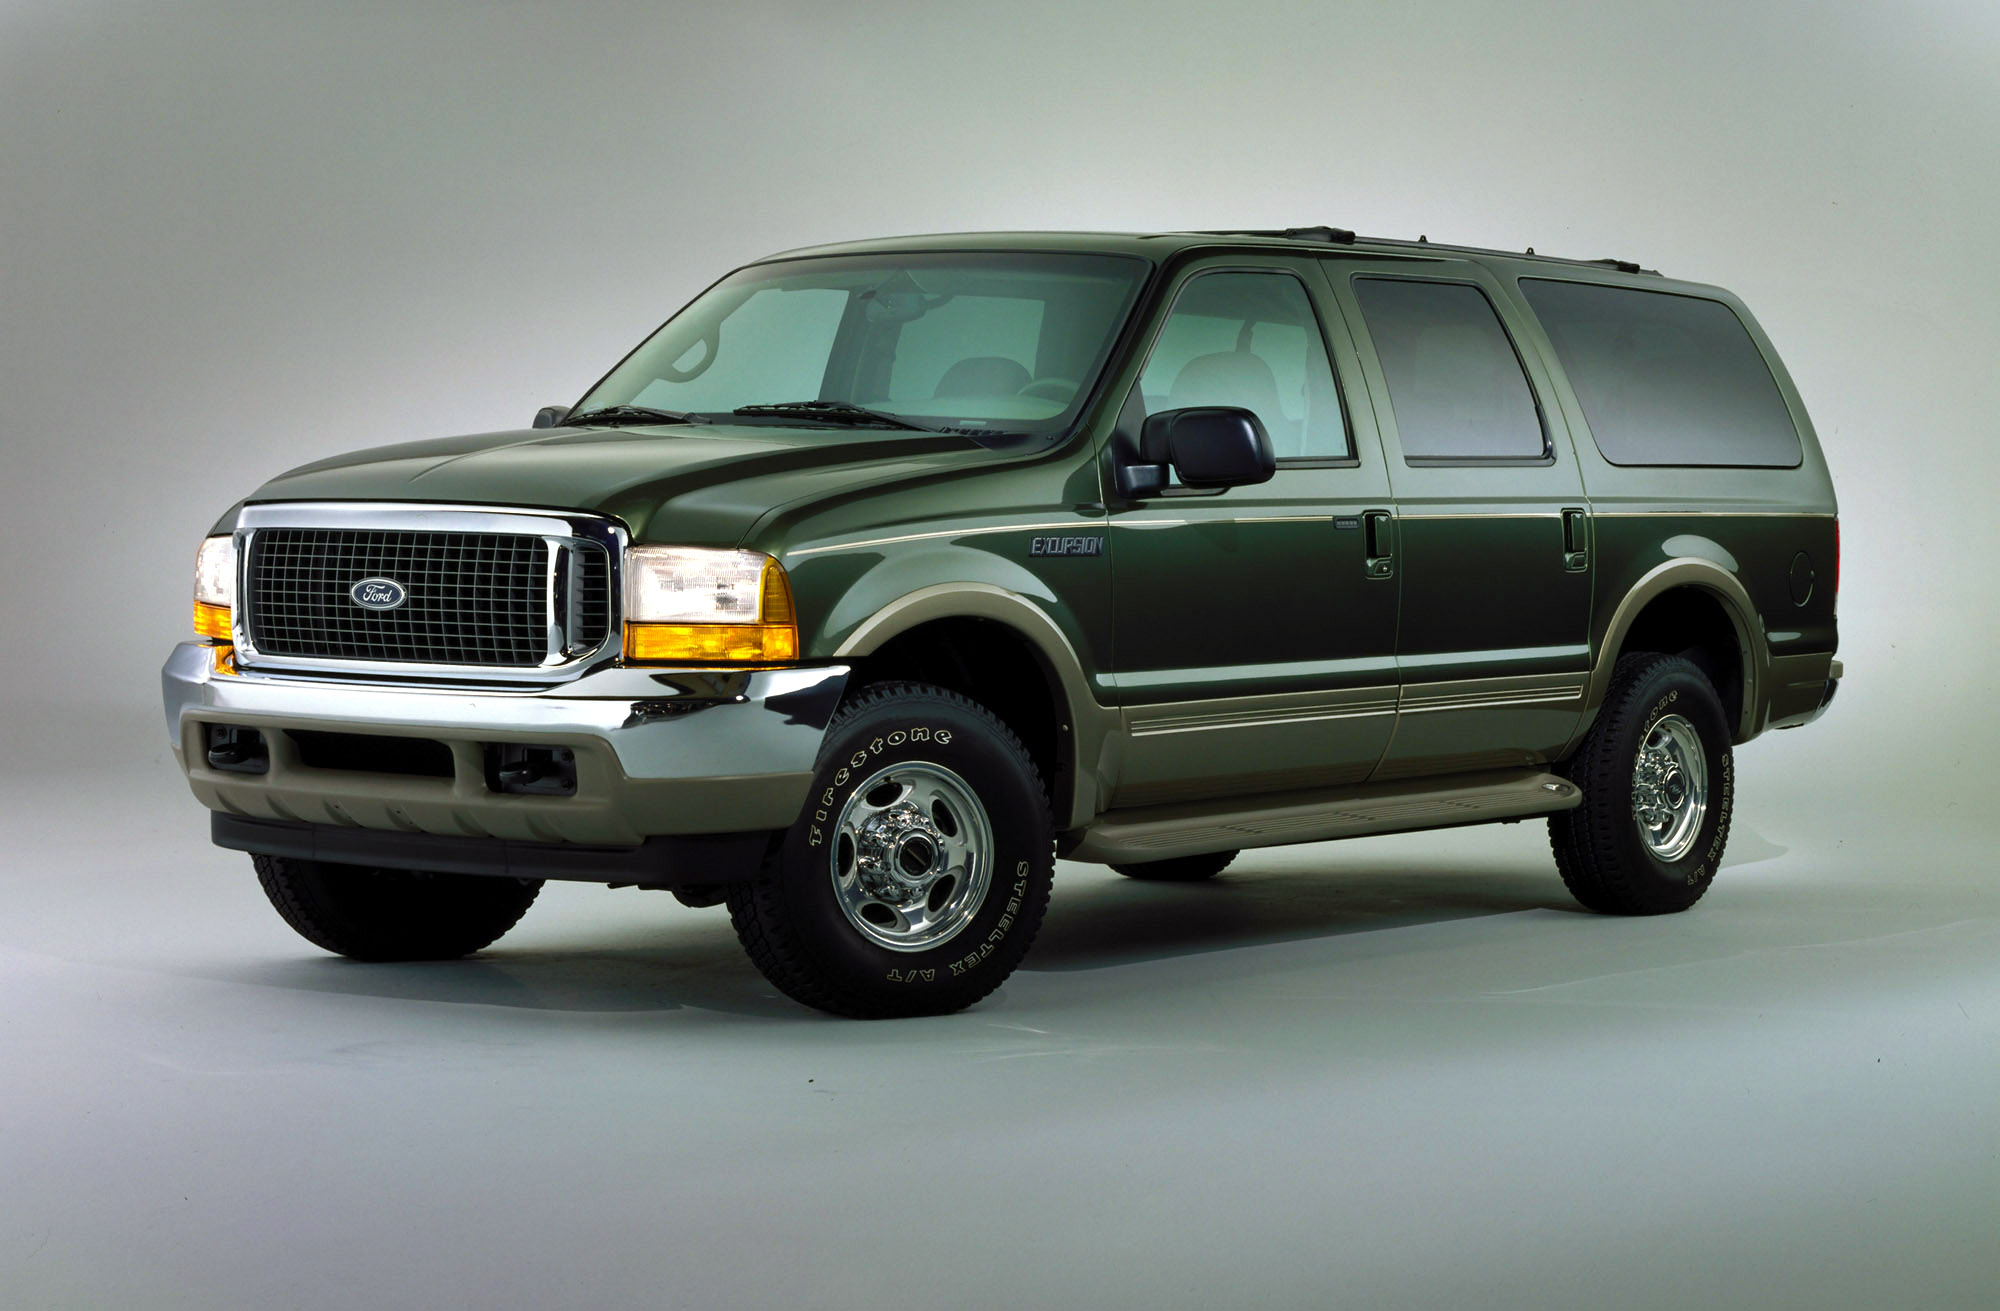 The 2000 Ford Excursion that became available in October 1999.